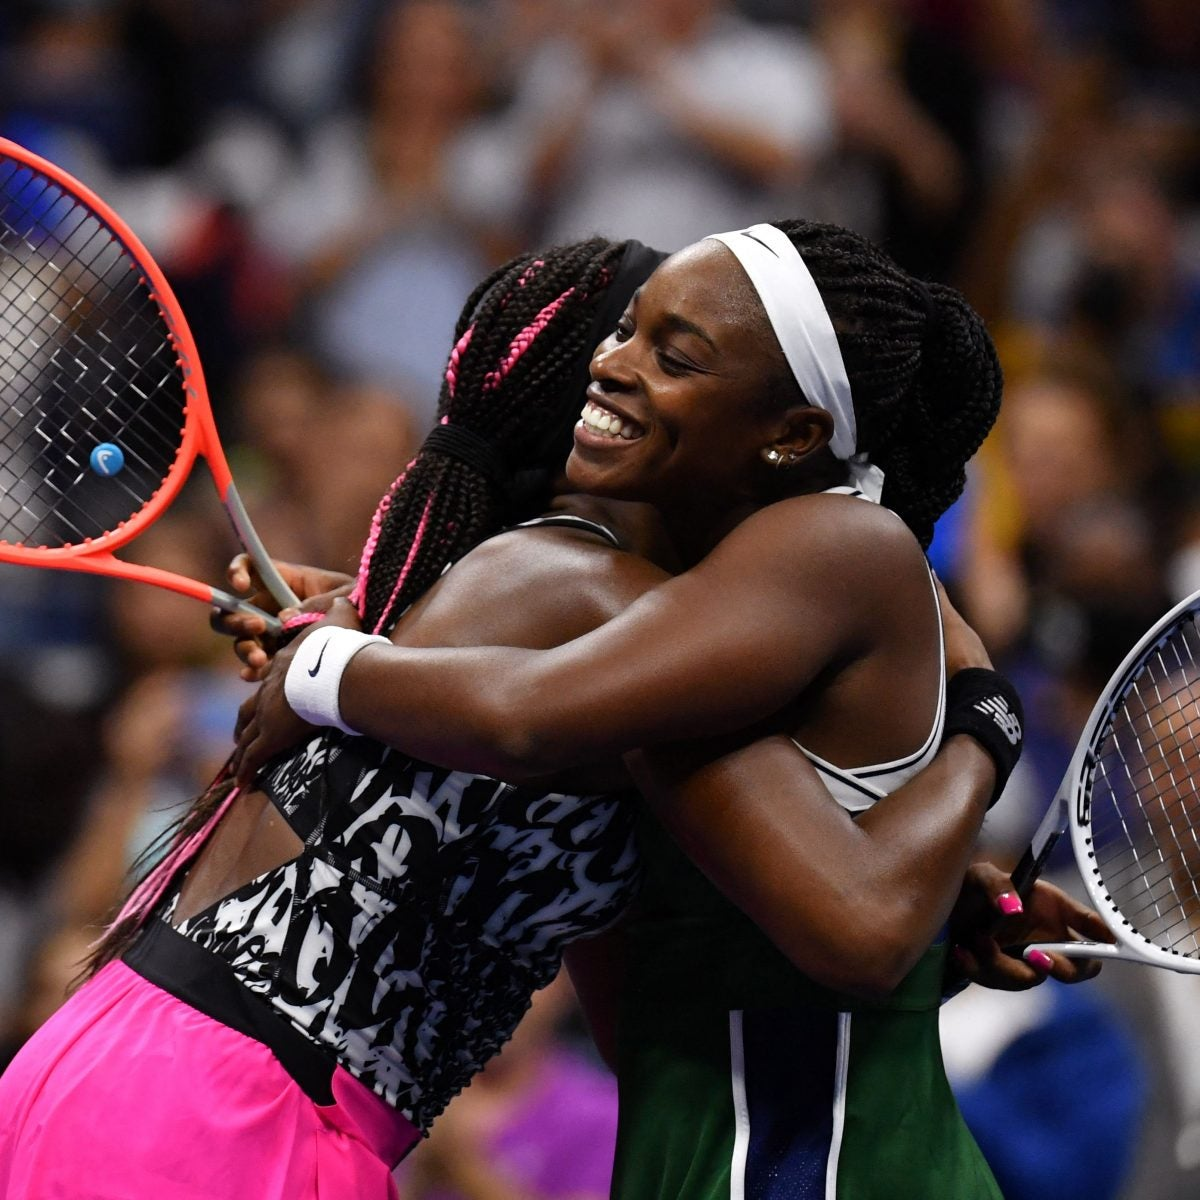 Black Girl Magic Is Serving At 2021 U.S. Open